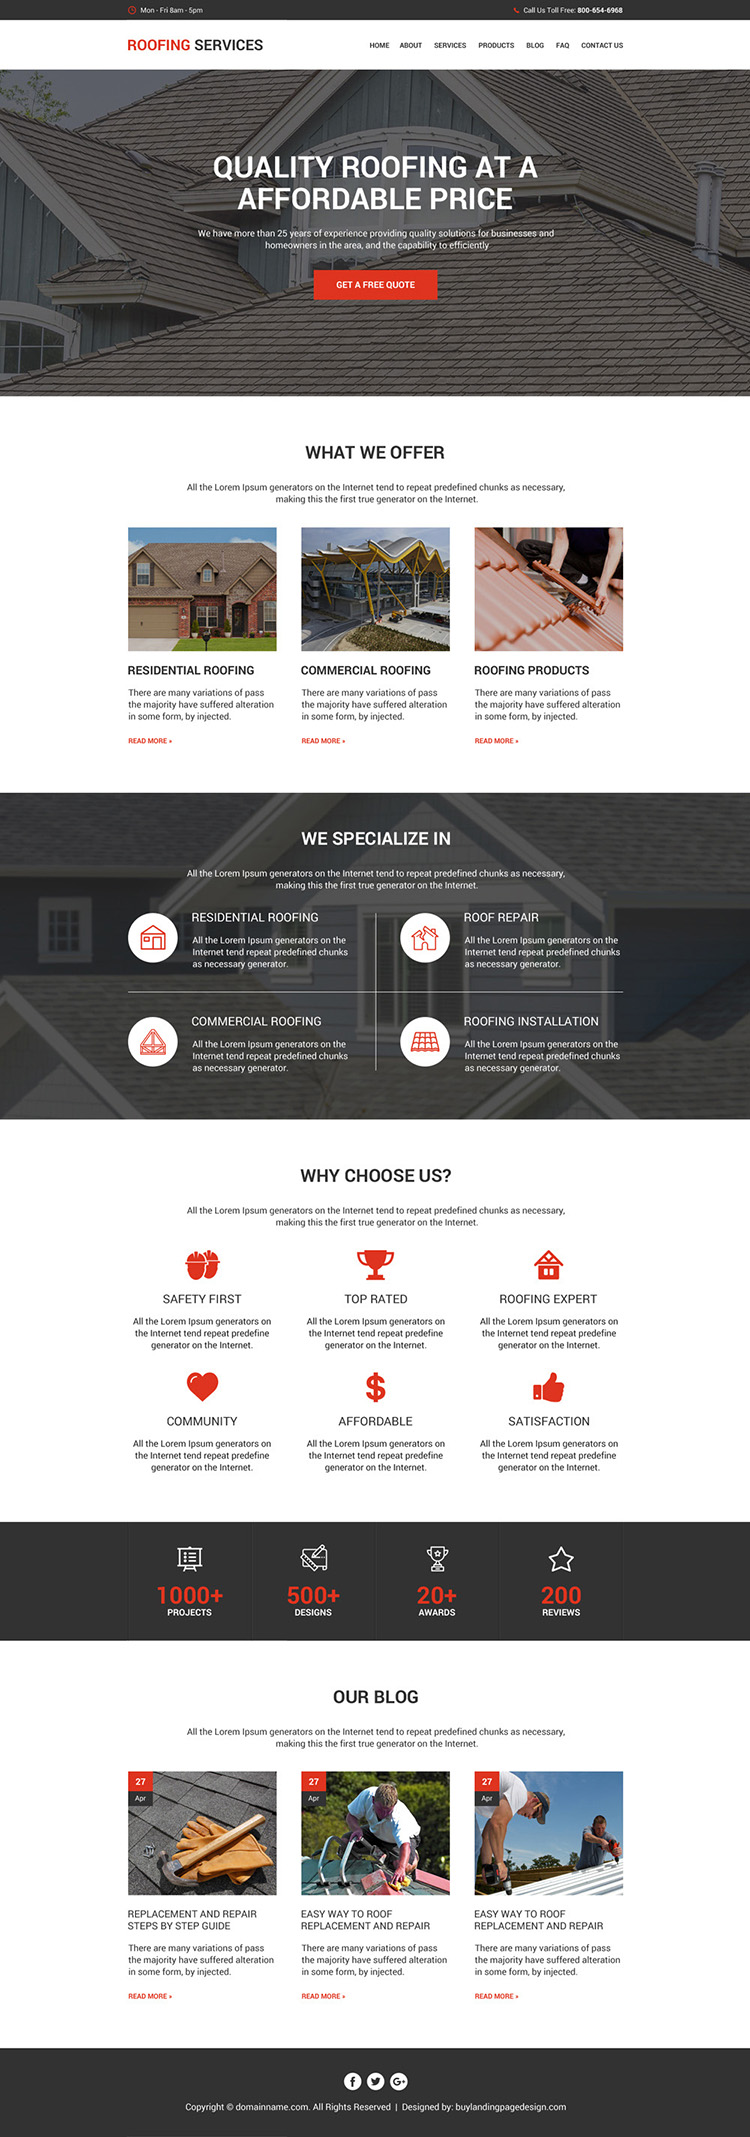 quality roofing service modern and clean website design